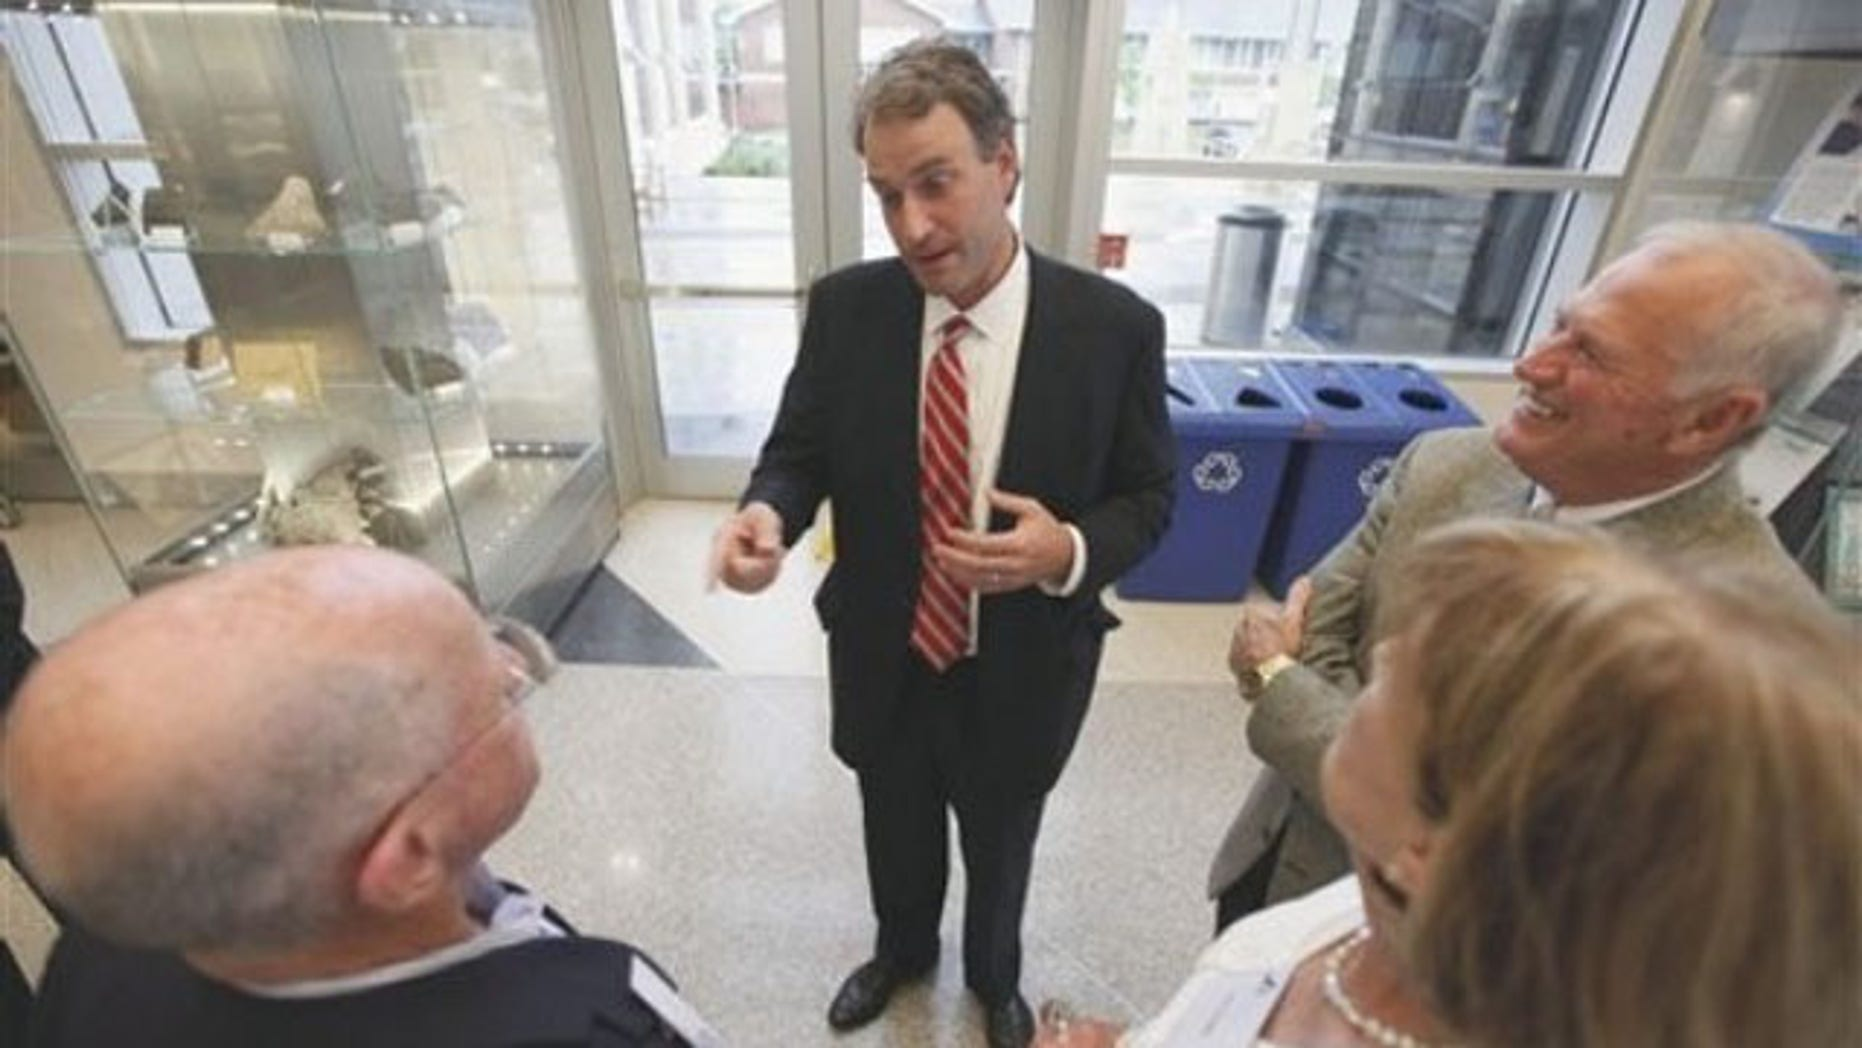 Virginia state Sen. Robert Hurt, center, talks to constituents prior to the start of a dinner at the Virginia Museum of Natural History in Martinsville, Va., July 13. (AP Photo)